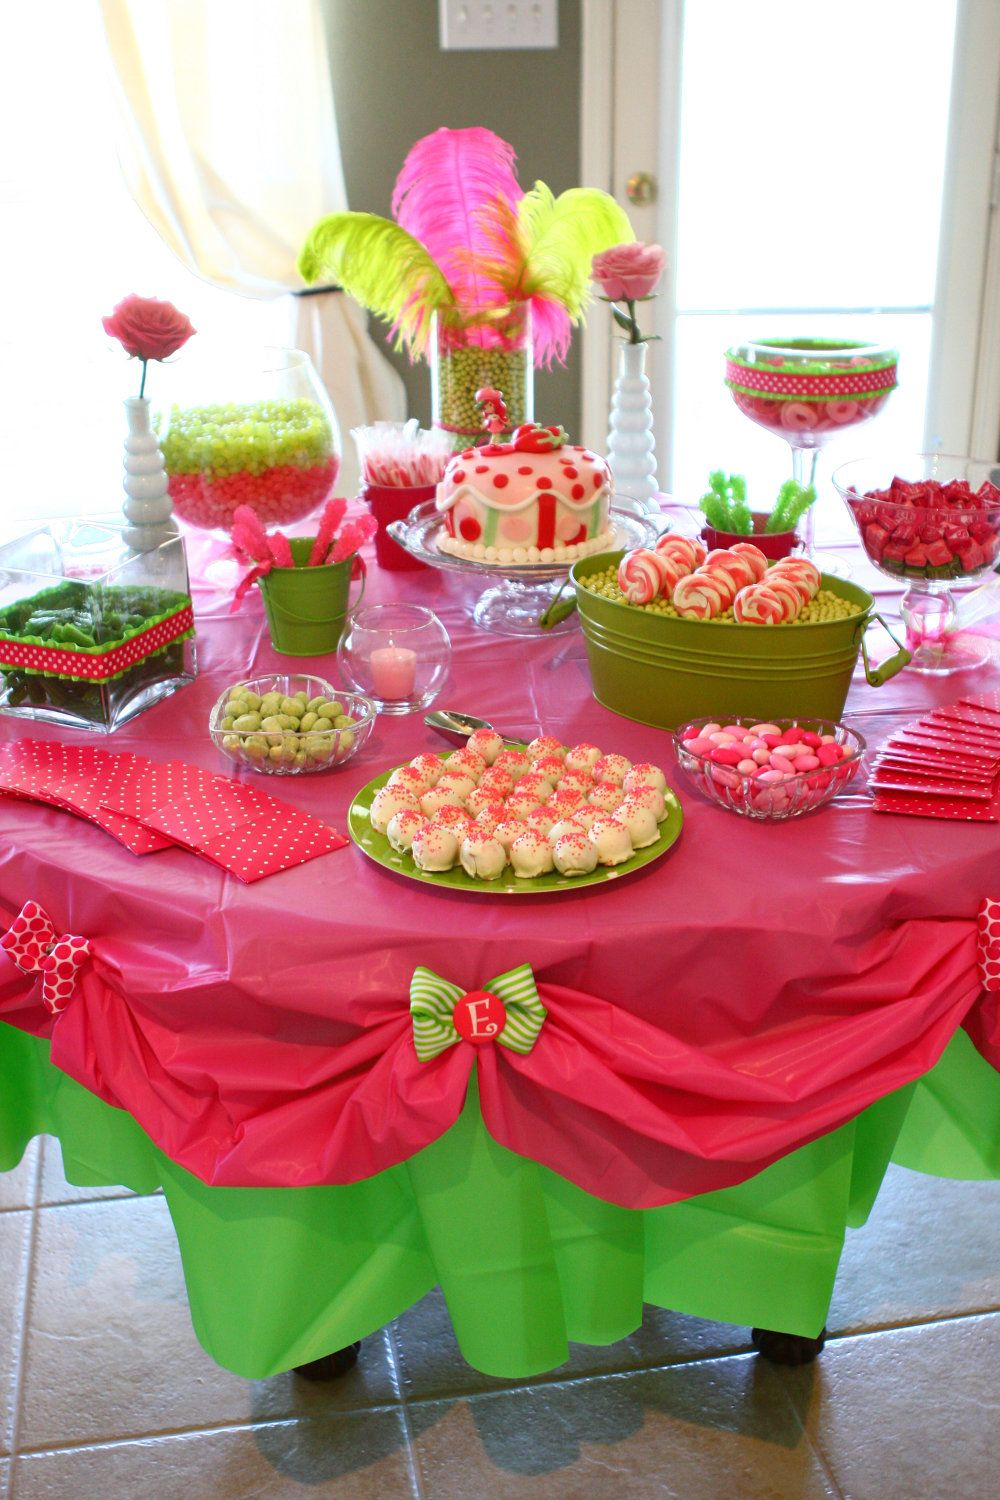 Personalized Table Cloth Pink and Green Birthday Party Candy